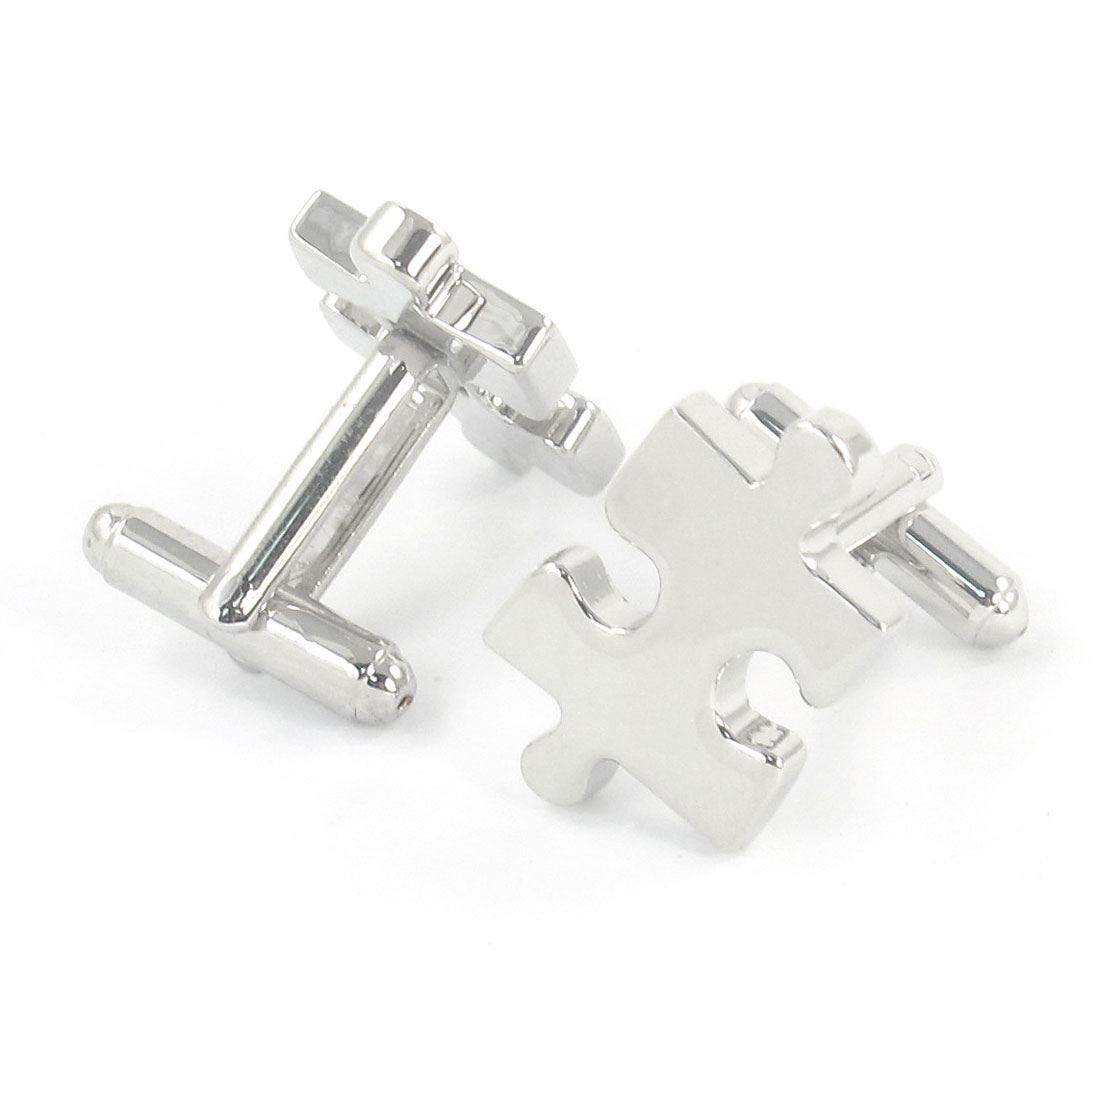 Pair Men Metallic Puzzle Jigsaw Design Tuxedo Shirt Decor Cufflink